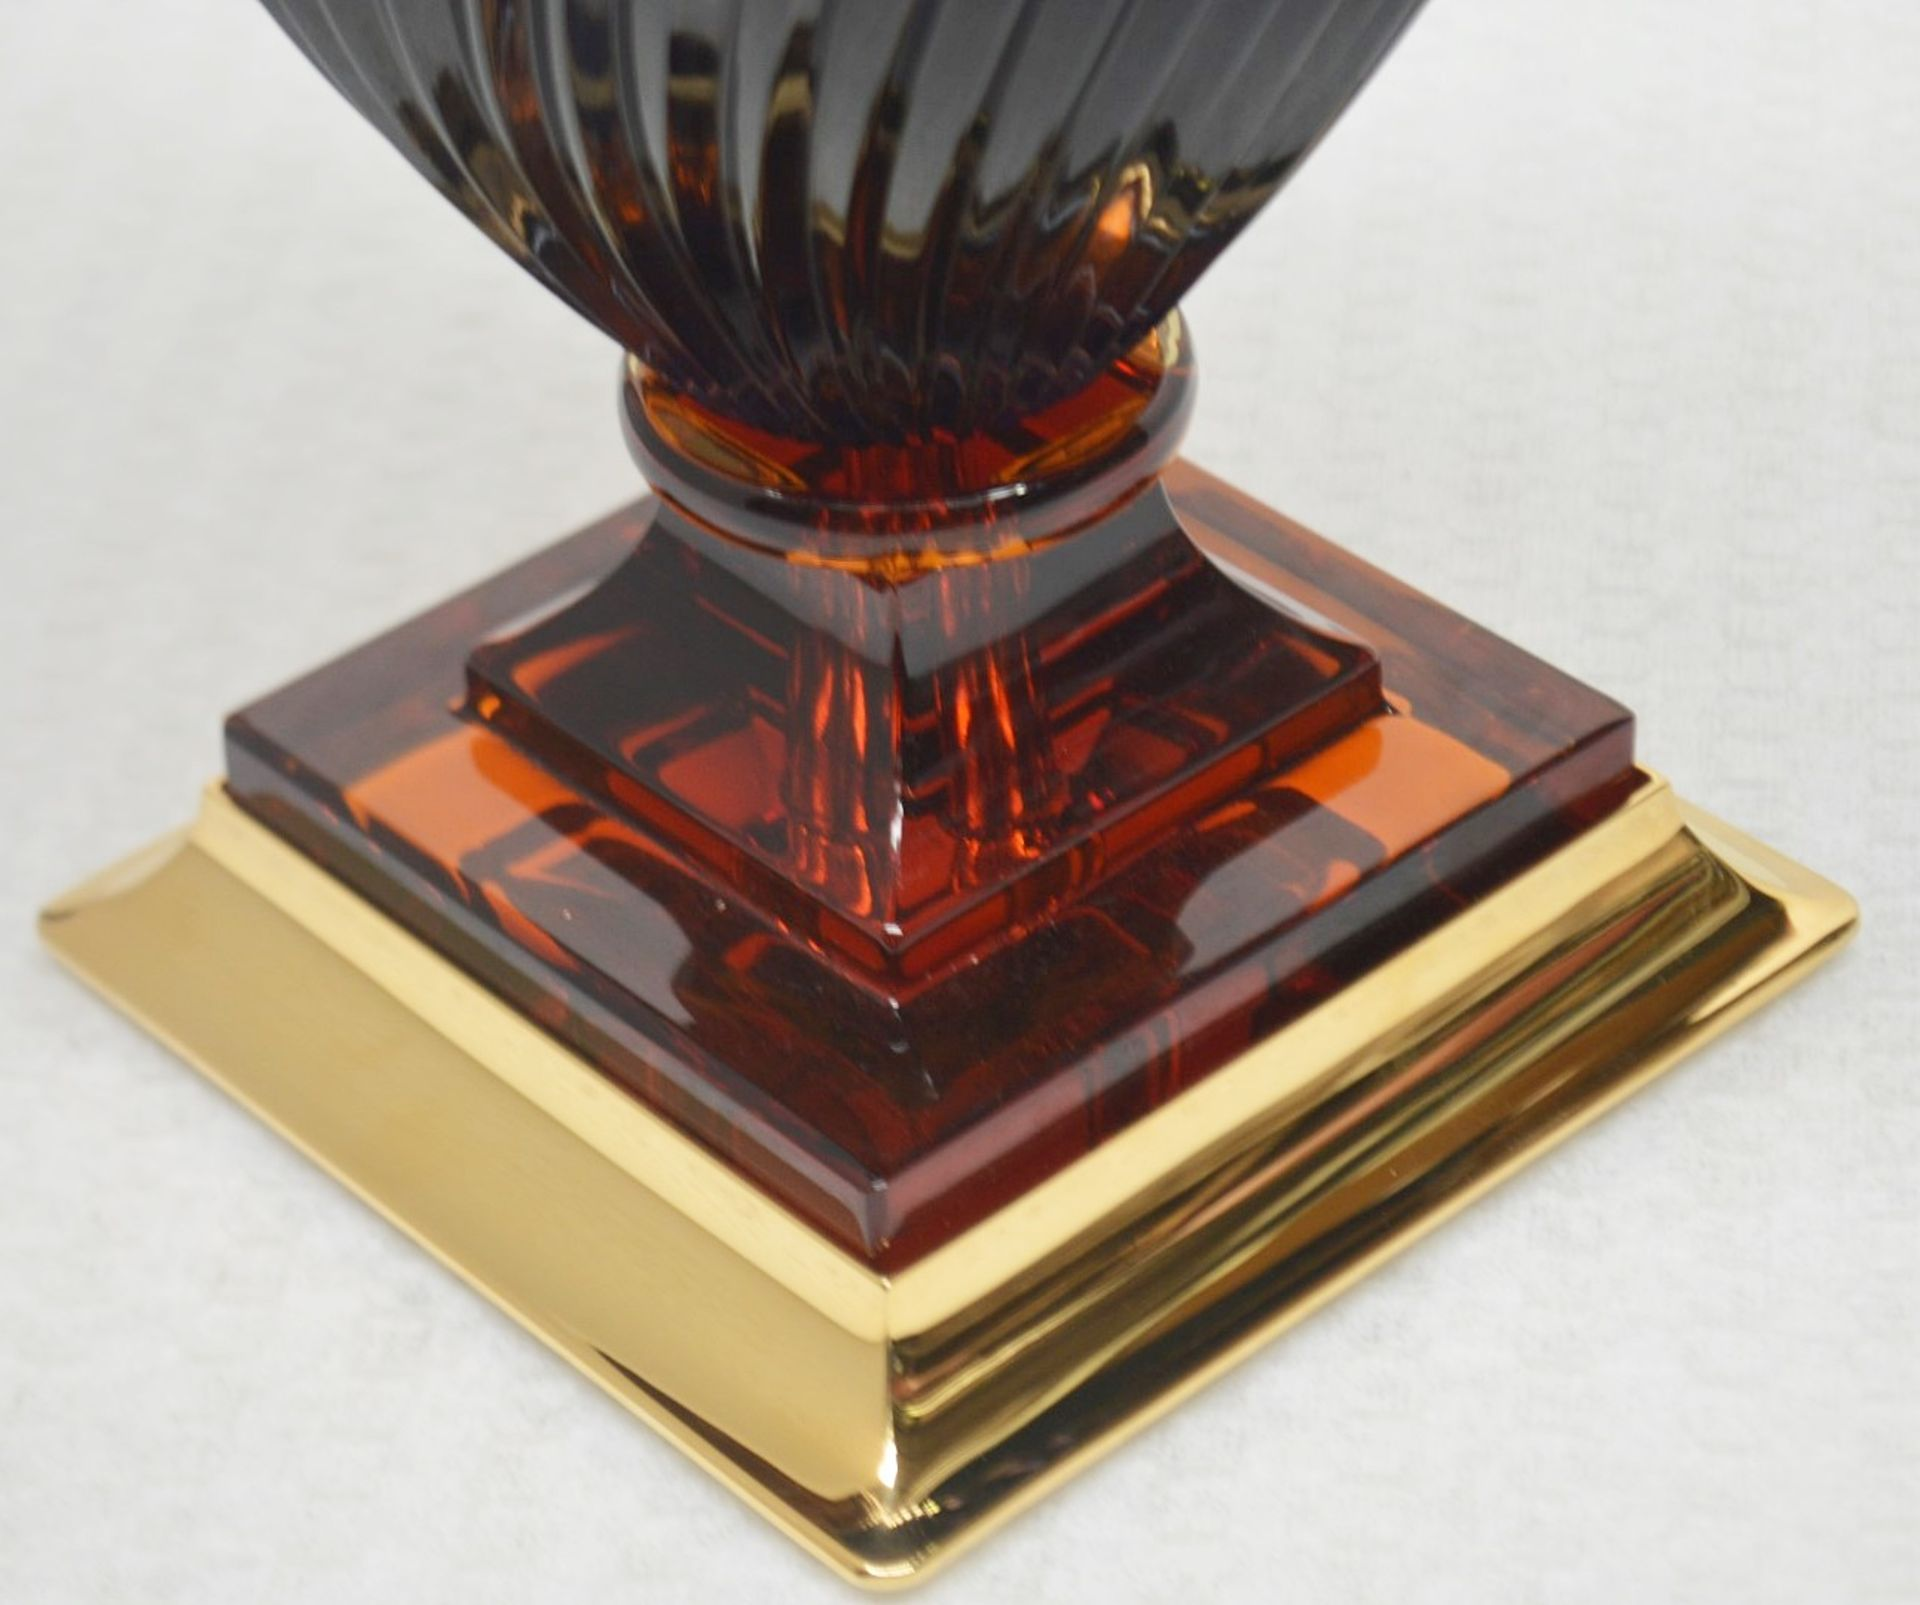 1 x BALDI 'Home Jewels' Italian Hand-crafted Artisan GHIAHDA VASE In Violet Crystal - RRP £1,925 - Image 3 of 5